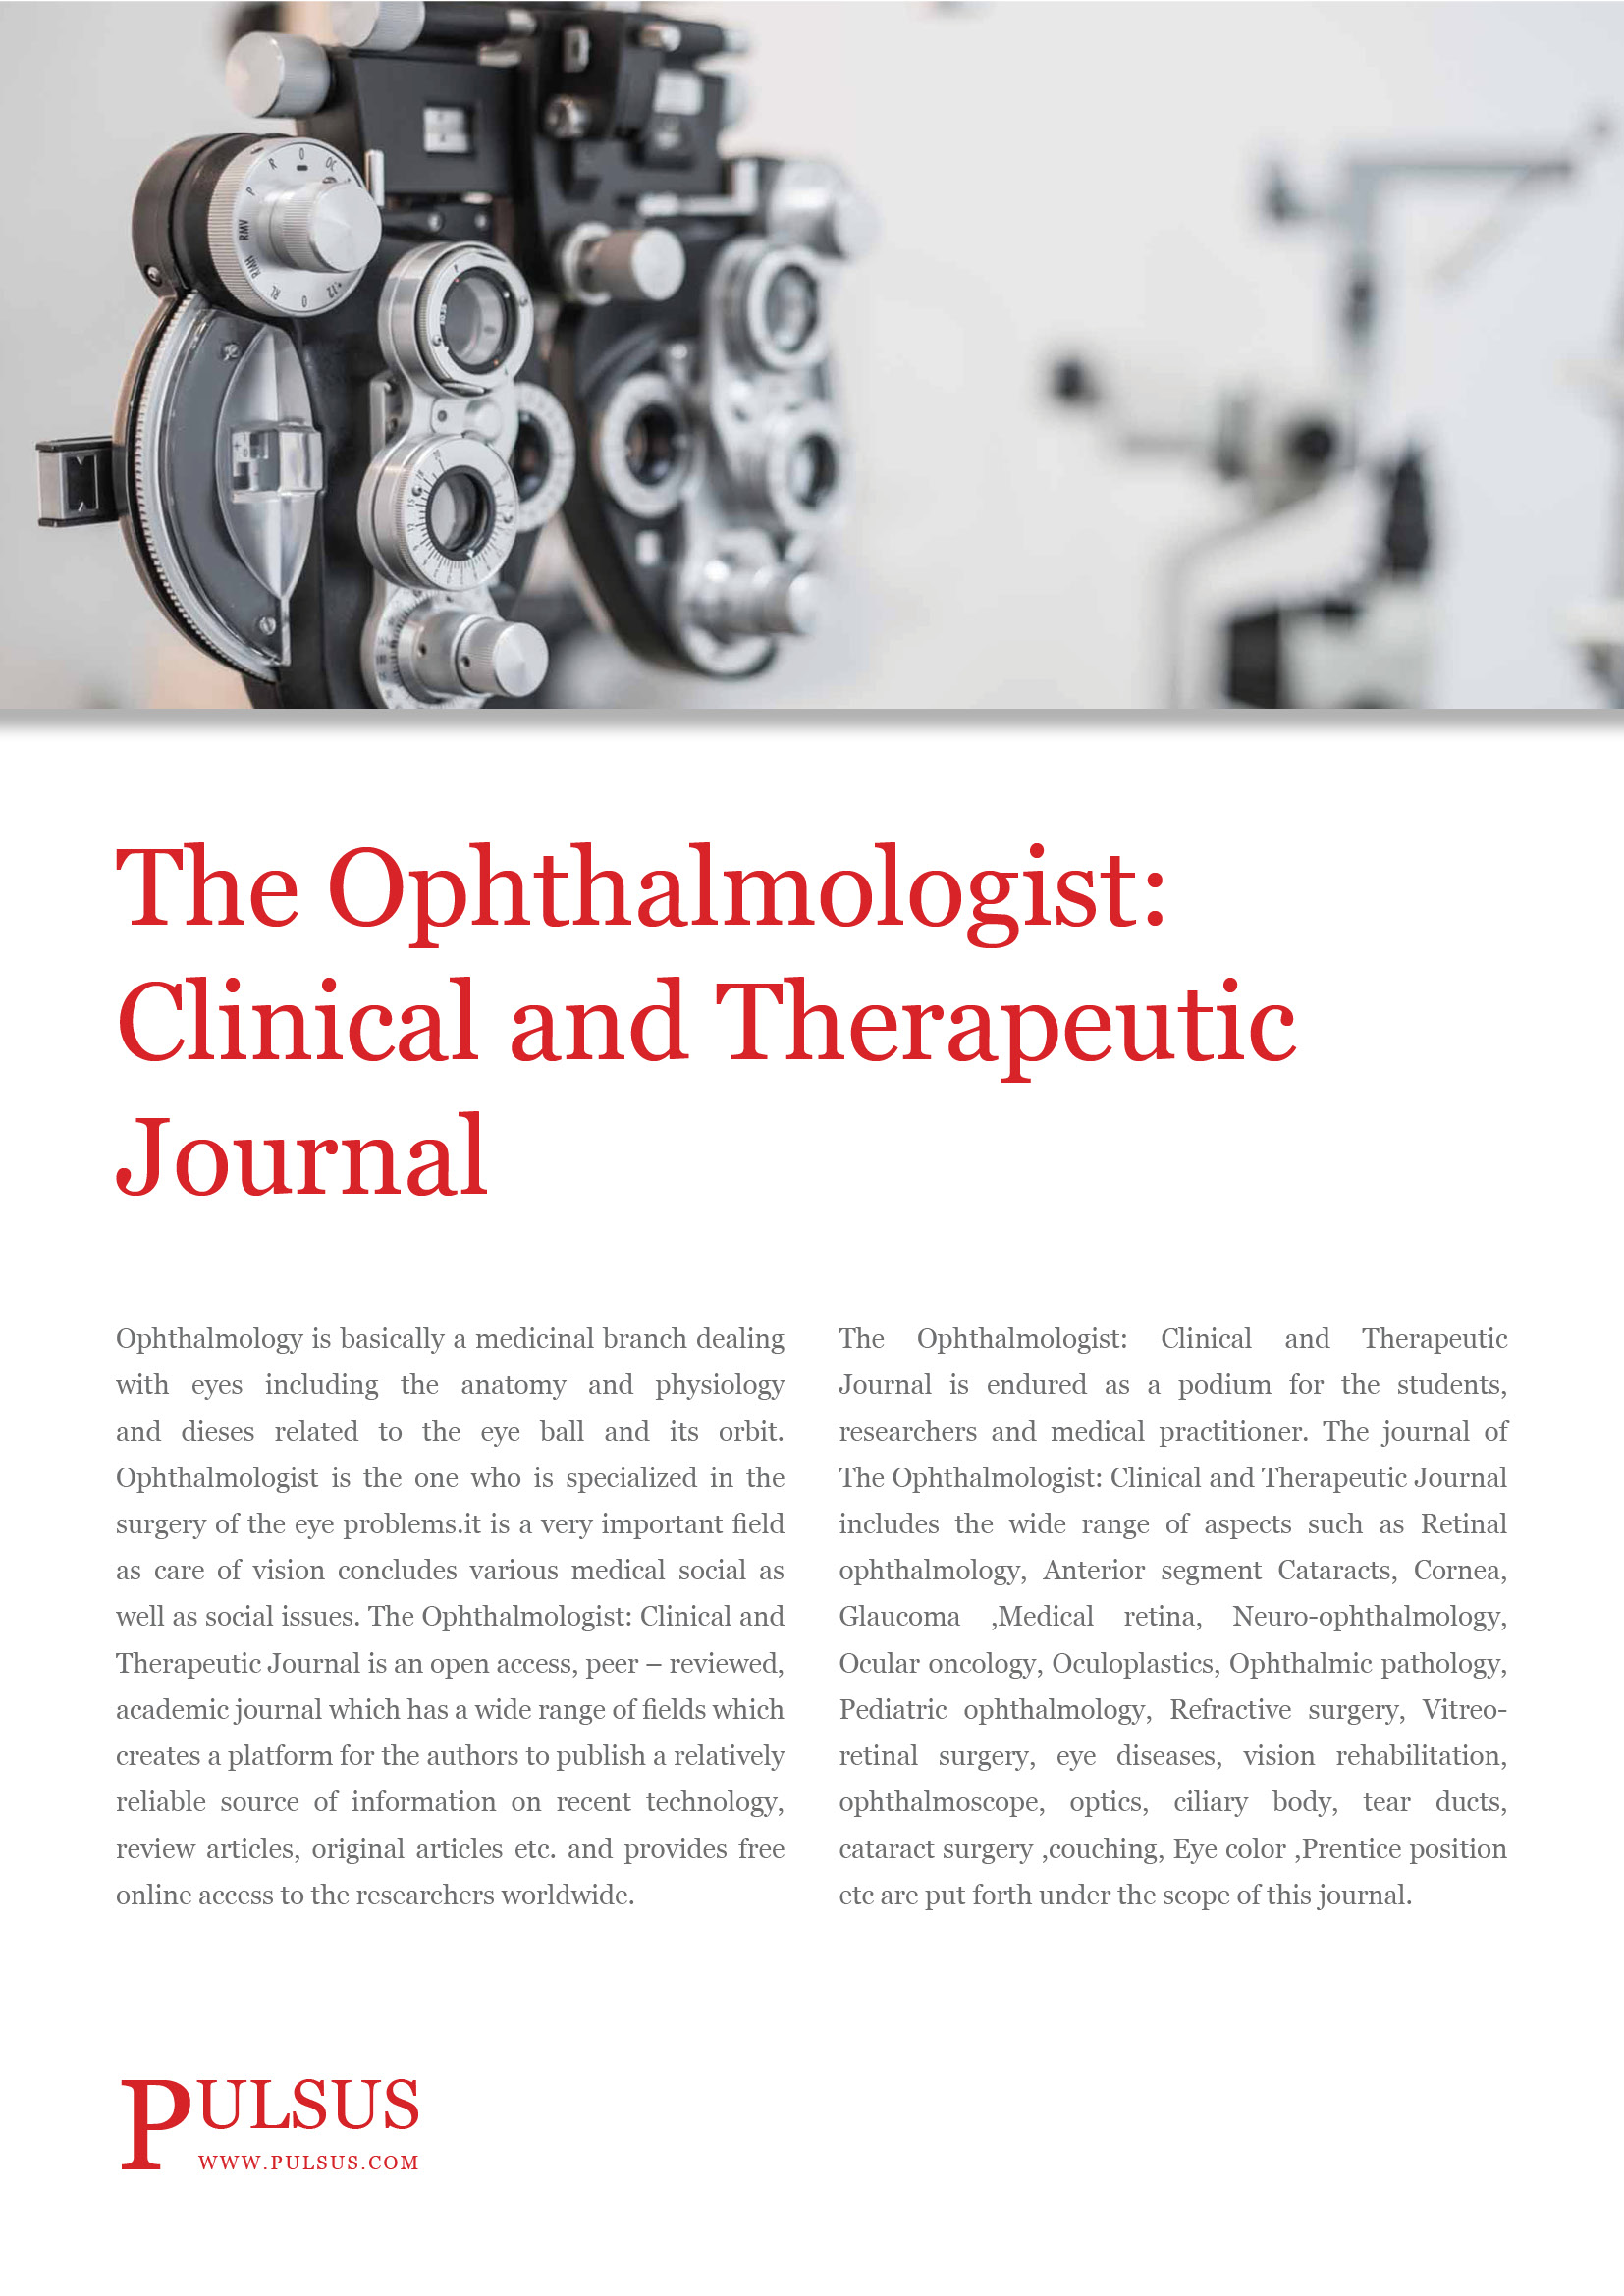 The Ophthalmologist: Clinical and Therapeutic Journal